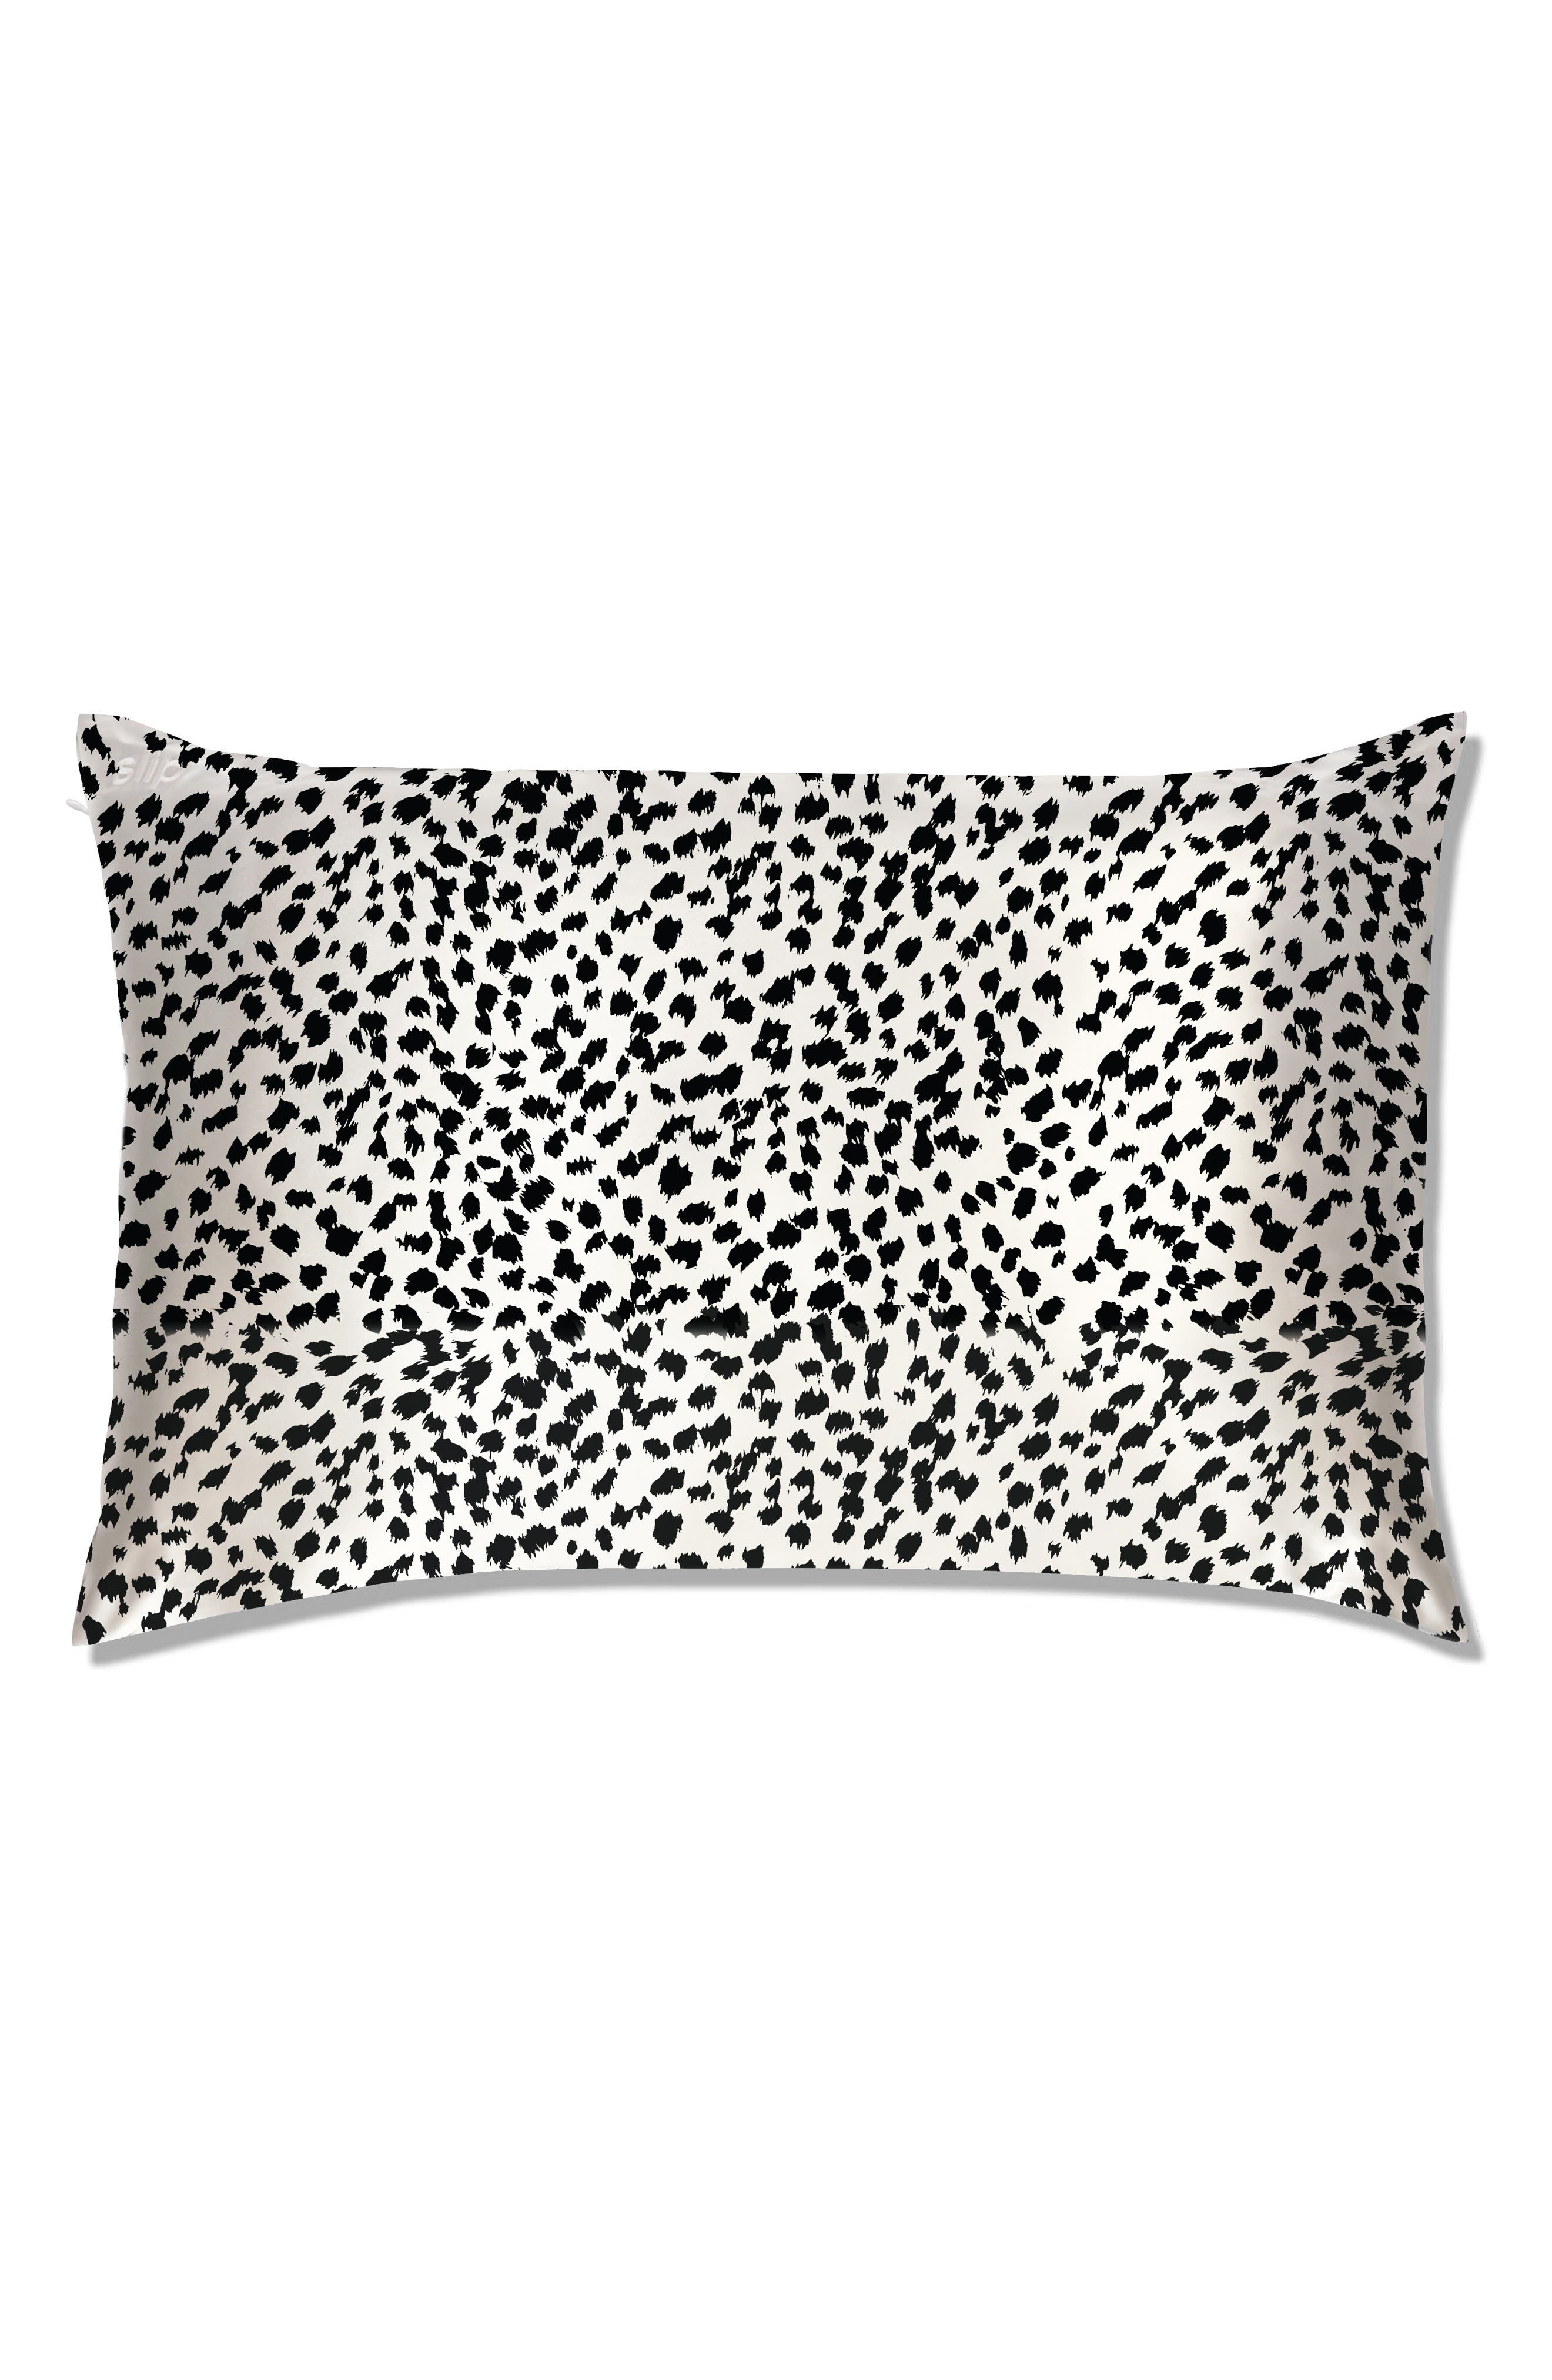 slip<sup>™</sup> for beauty sleep<sup>™</sup> Black & White Leopard Pillowcase,                             Main thumbnail 1, color,                             NO COLOR